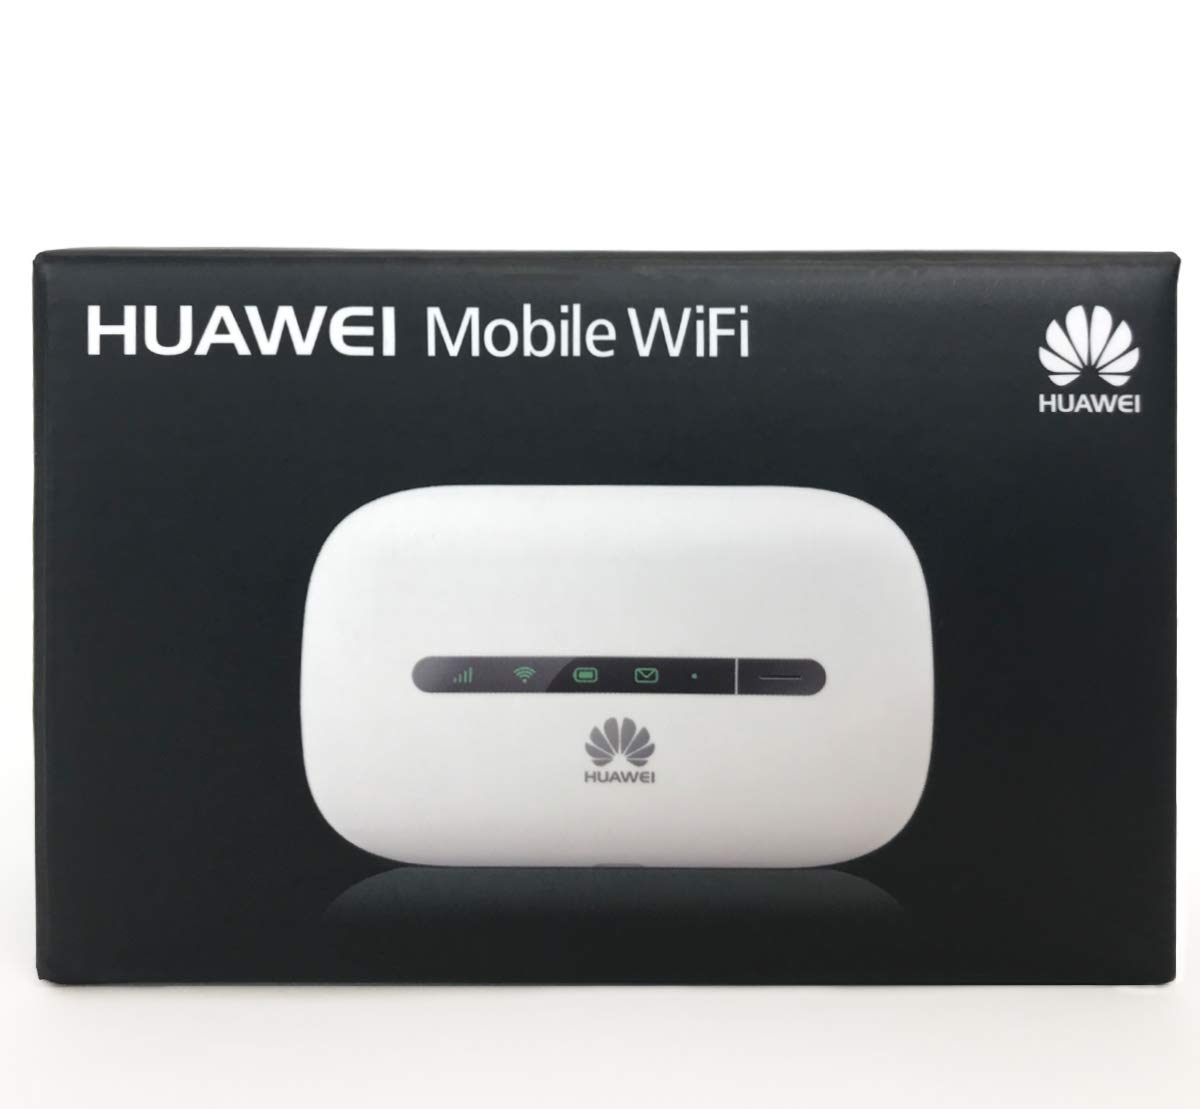 Huawei E5330Bs-2 3G Mobile WiFi Hotspot (3G in Europe, Asia, Middle East & Africa), OEM/ORIGINAL from Huawei. White by HUAWEI (Image #6)